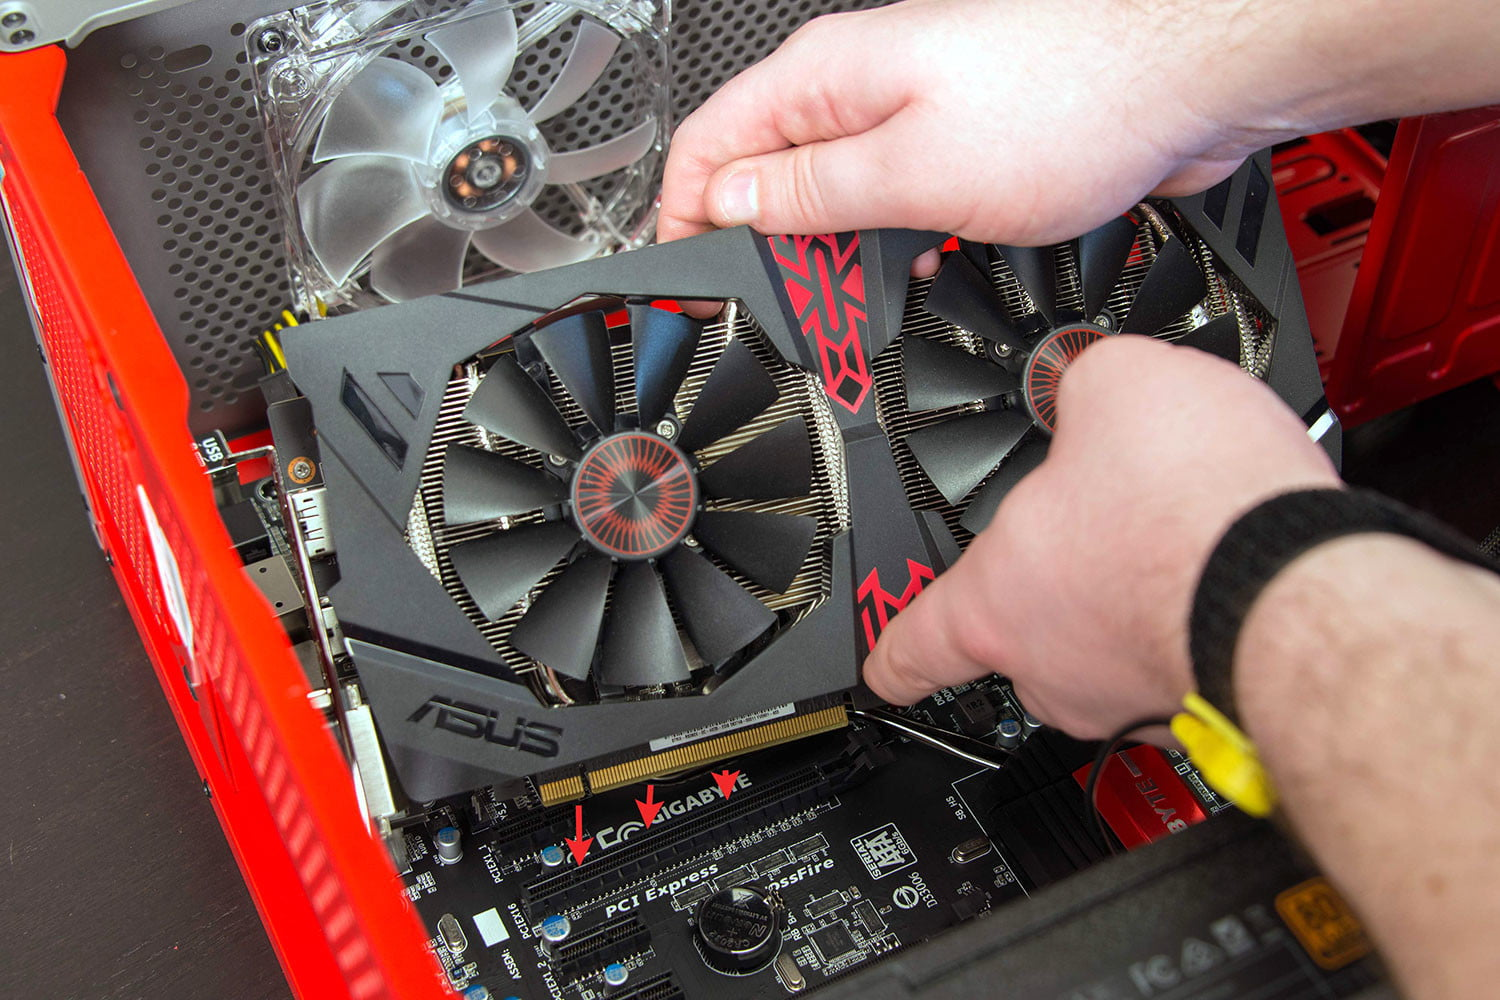 Graphics card going into motherboard slot.